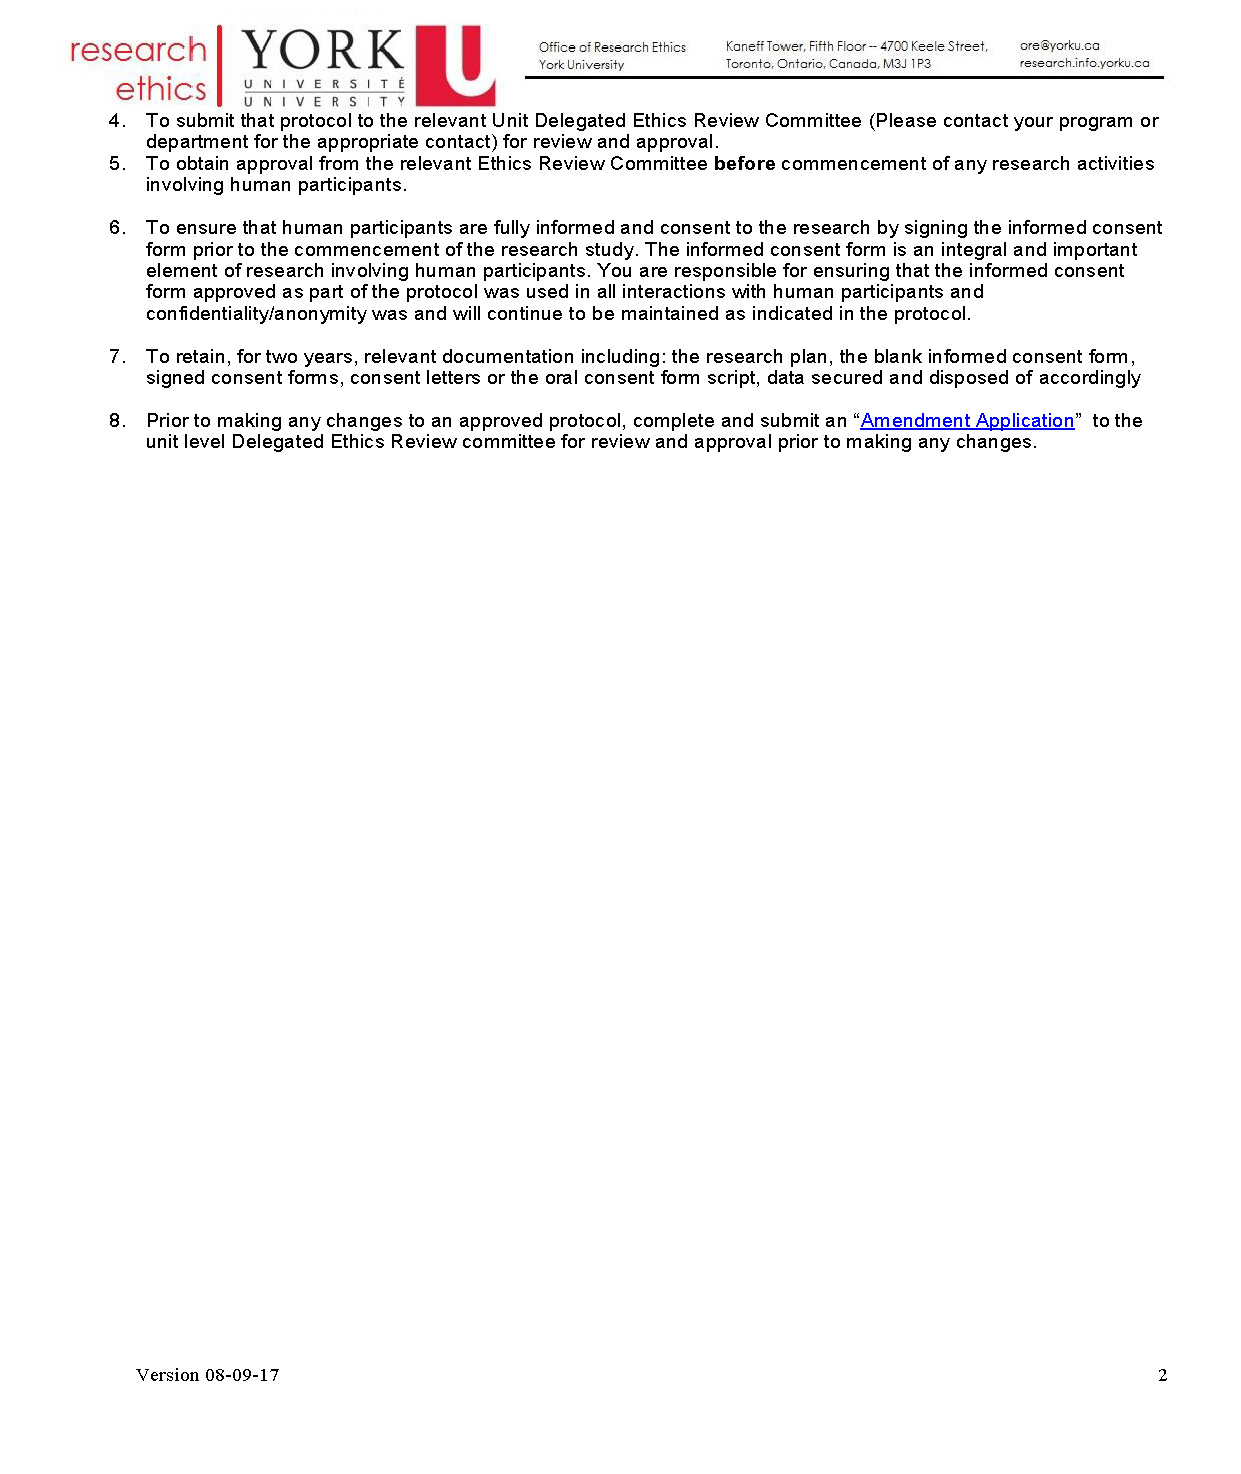 full-size image of student research responsibilities from research ethics page 2